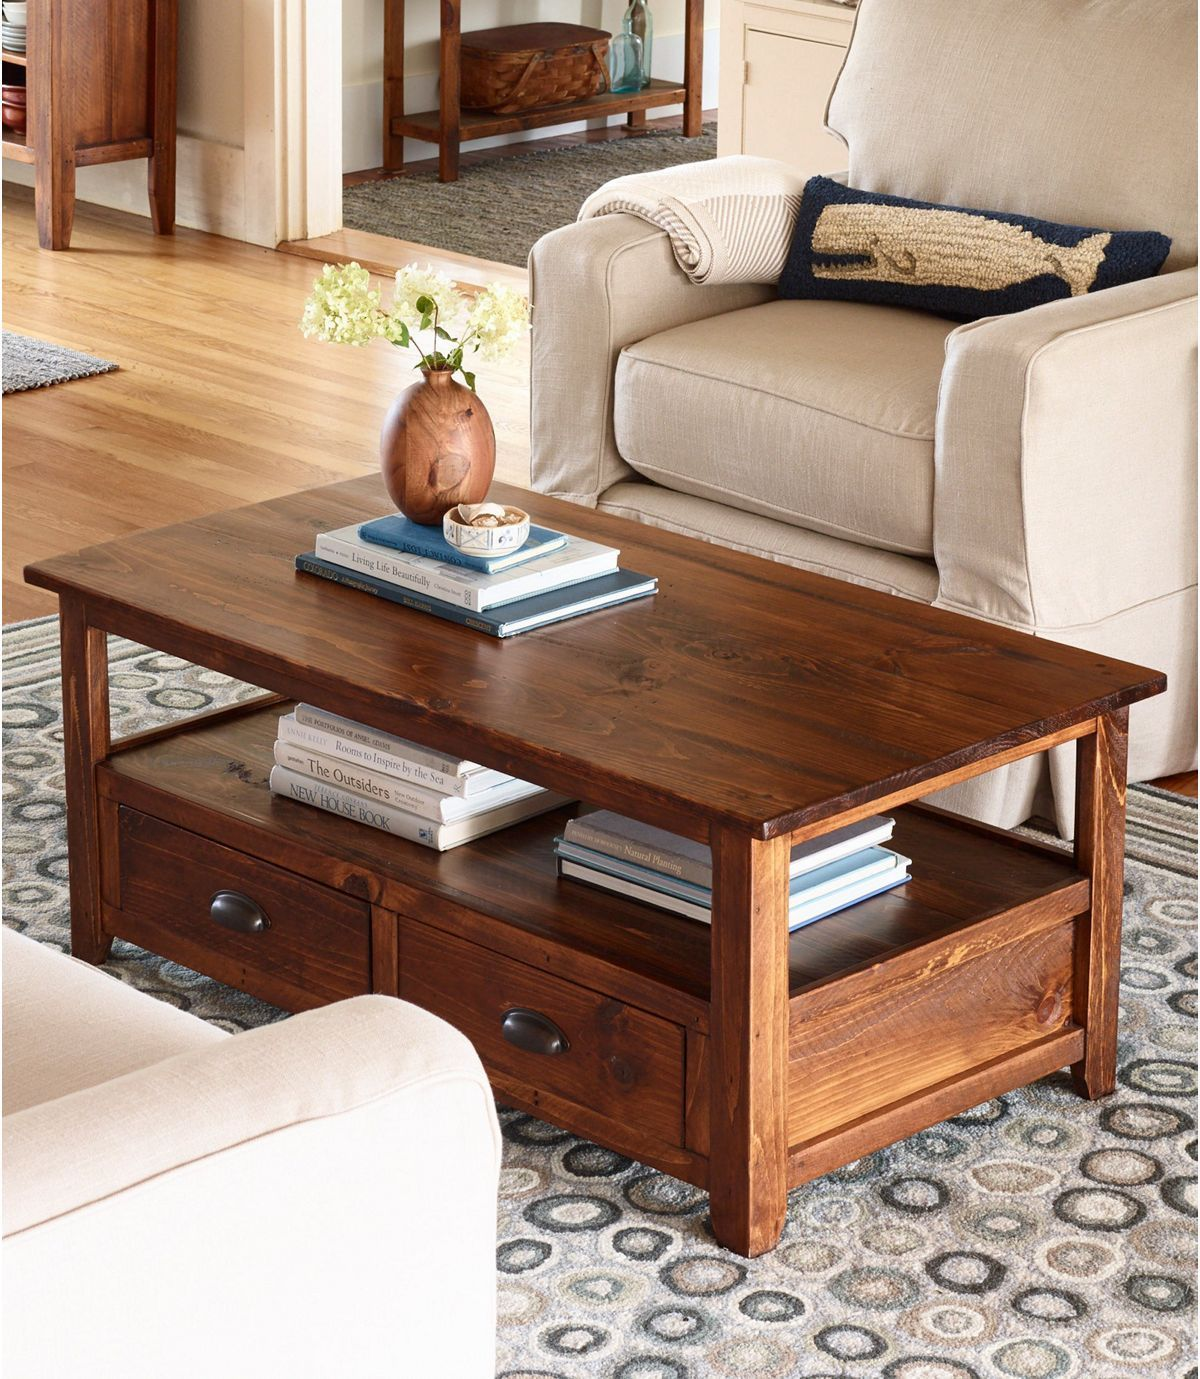 Rustic Wooden Coffee Table Coffee Table Inspiration Wooden Coffee Table Wooden Coffee Table Designs [ 1379 x 1200 Pixel ]